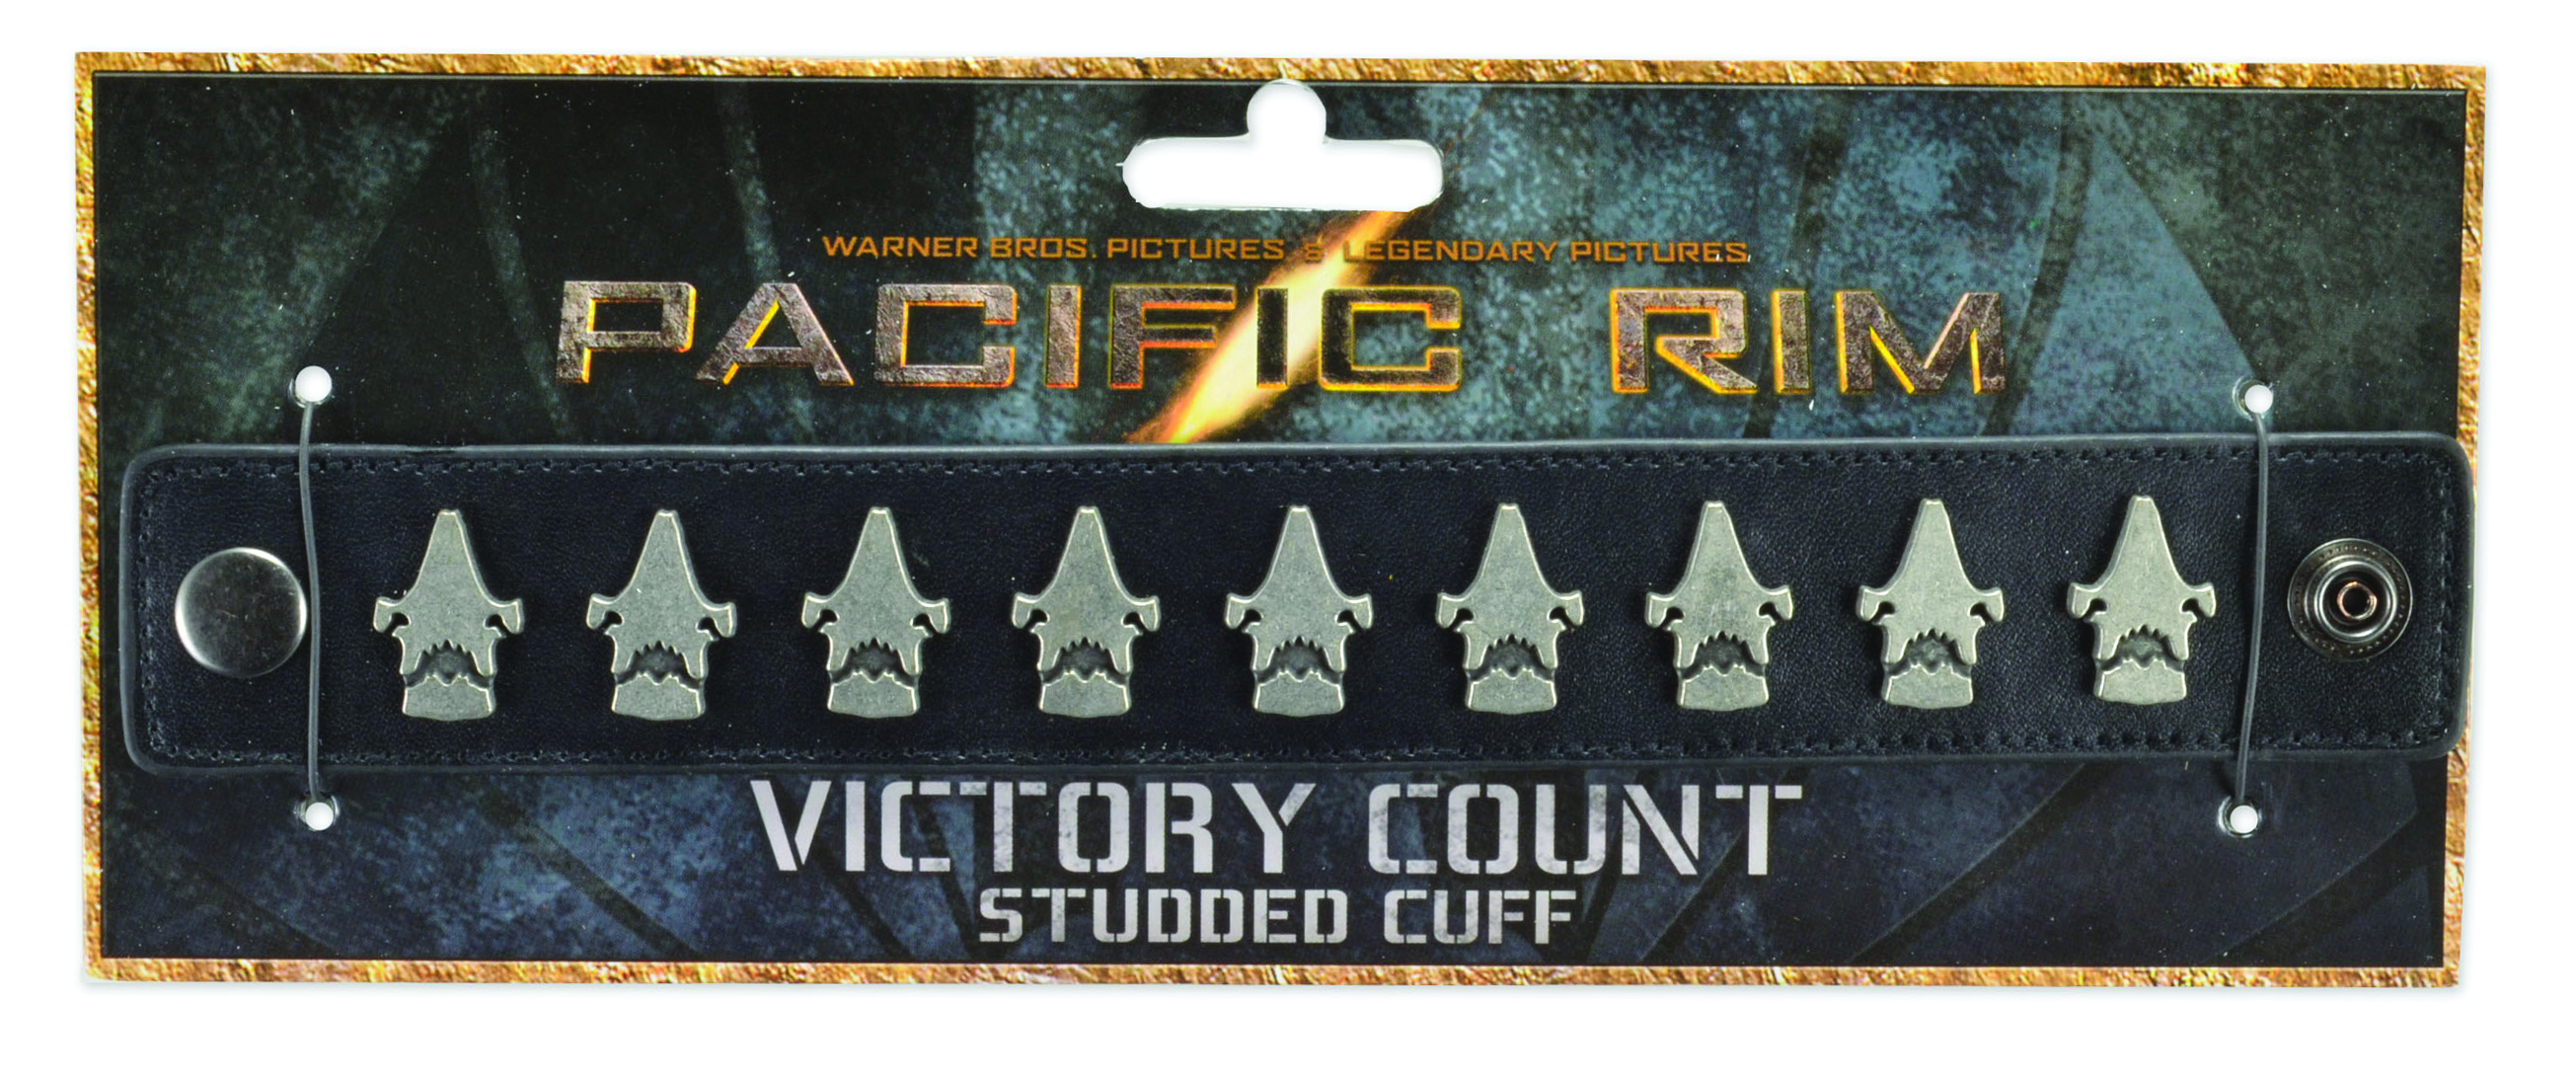 PACIFIC RIM VICTORY COUNT STUDDED CUFF